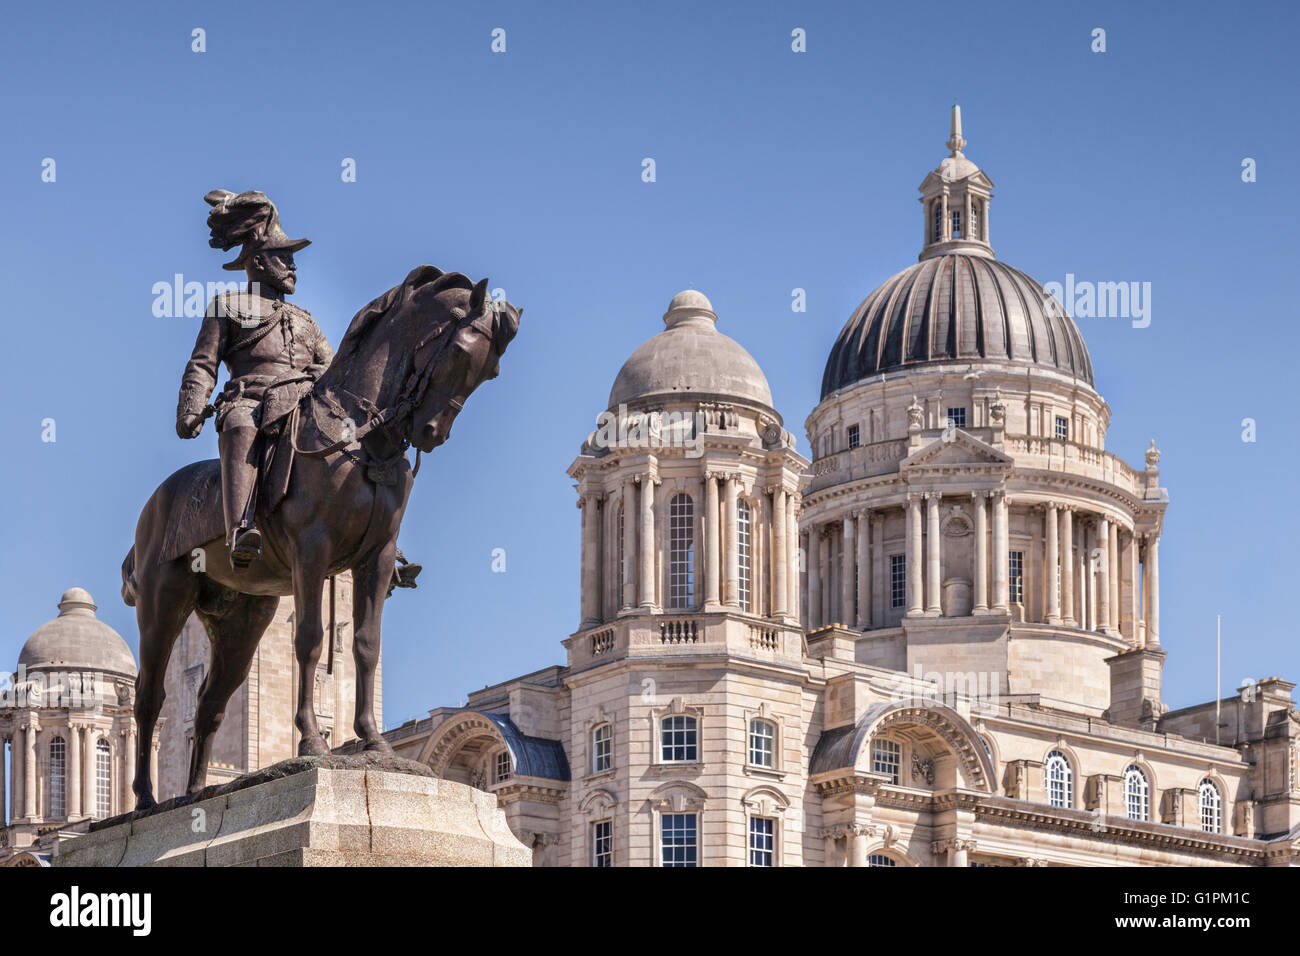 Statue of King Edward VII and the Port of Liverpool building, Liverpool Waterfront, England, UK, Focus on statue. - Stock Image